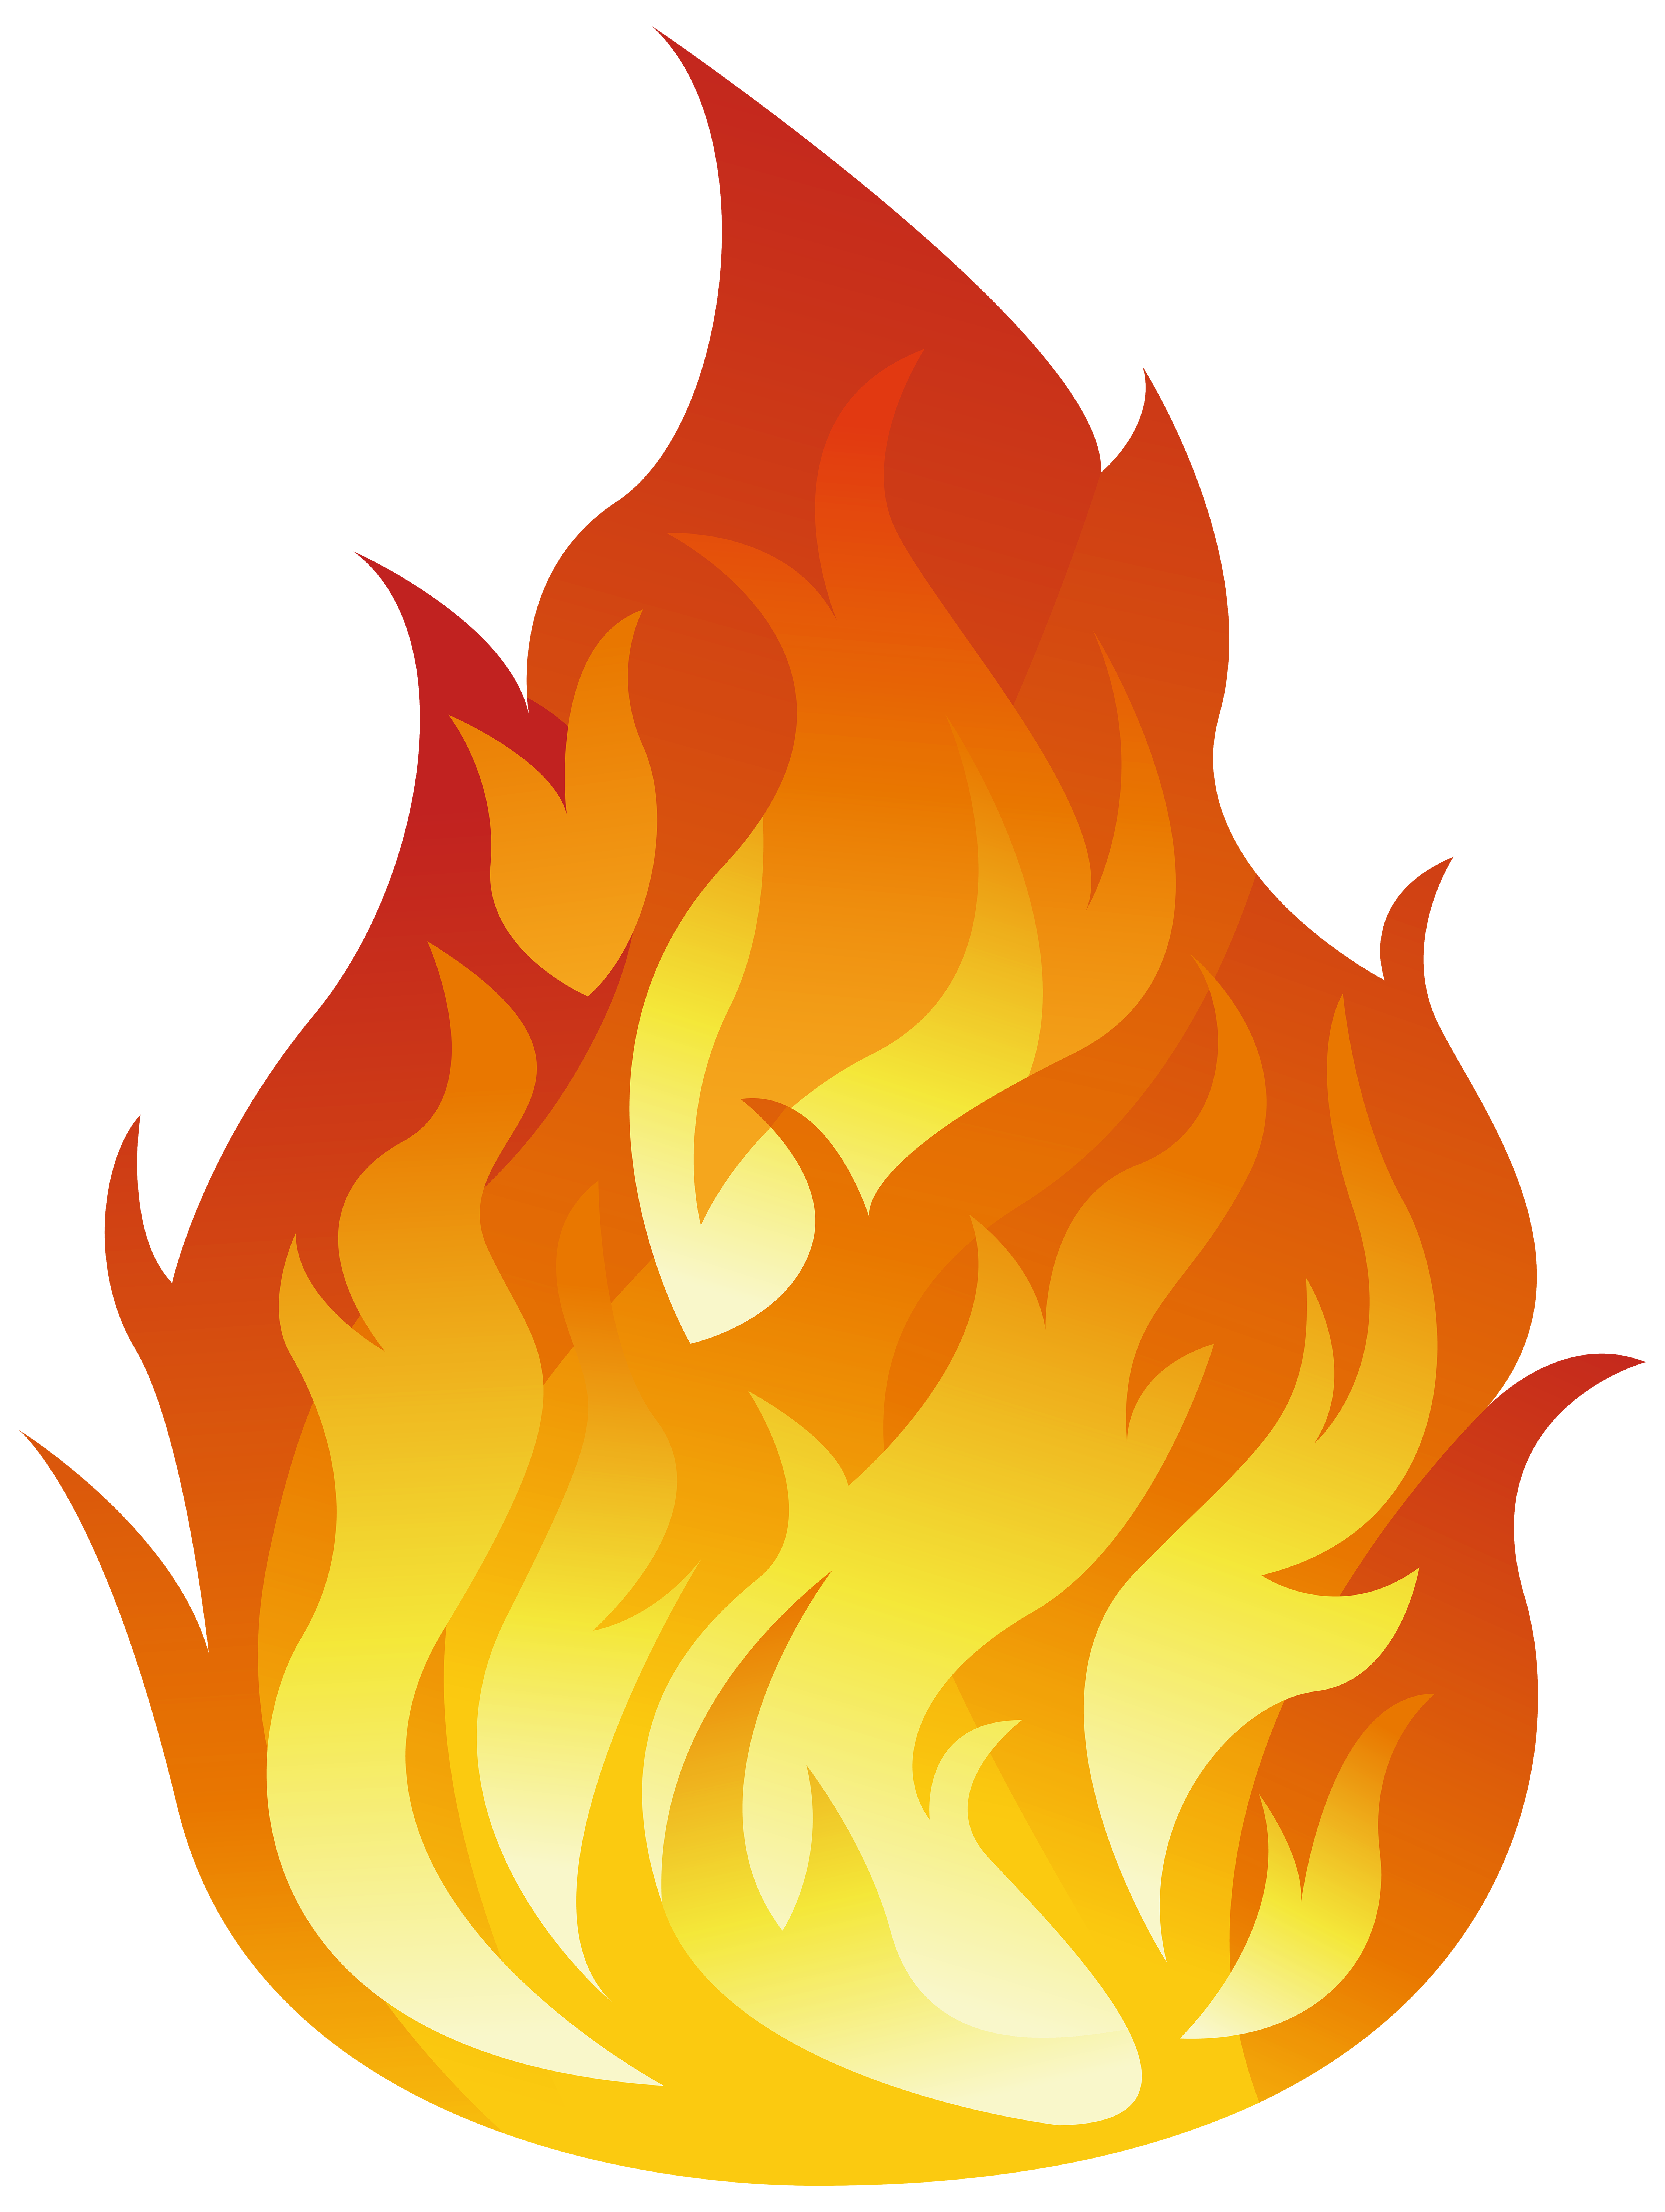 4517x6000 Flame Transparent Clip Art Image Gallery Yopriceville